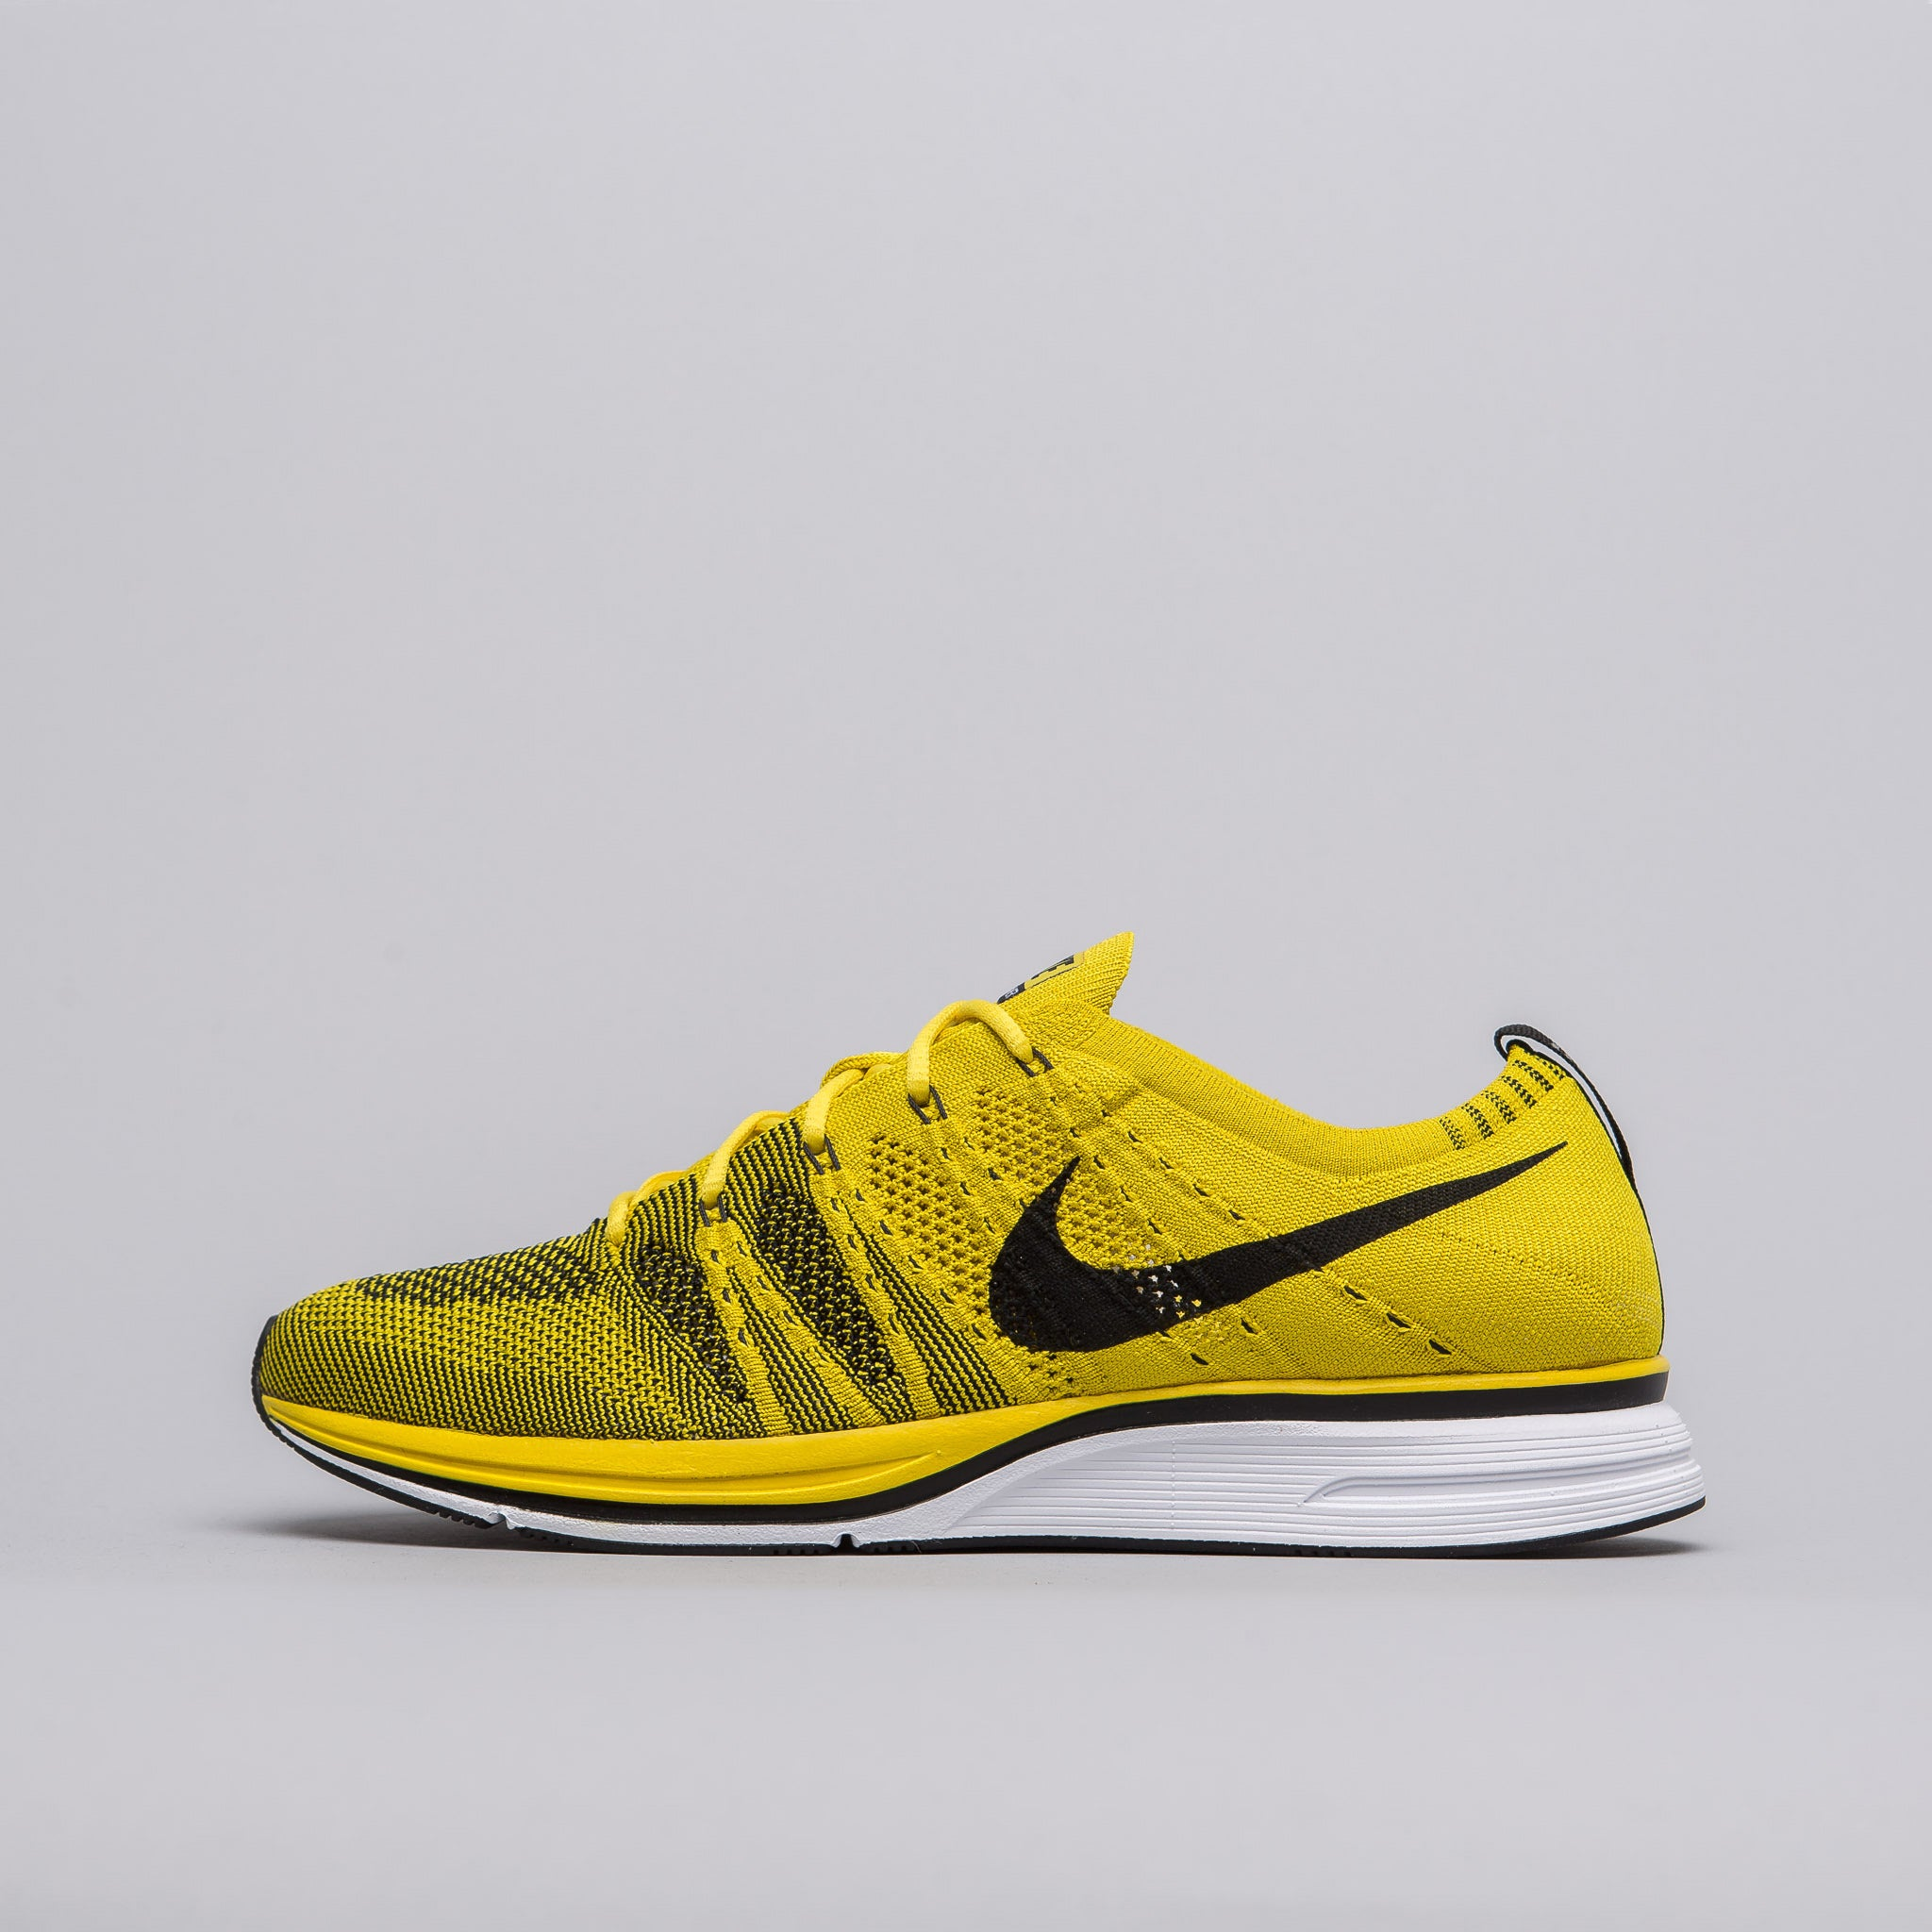 Flyknit Trainer in Bright Citron